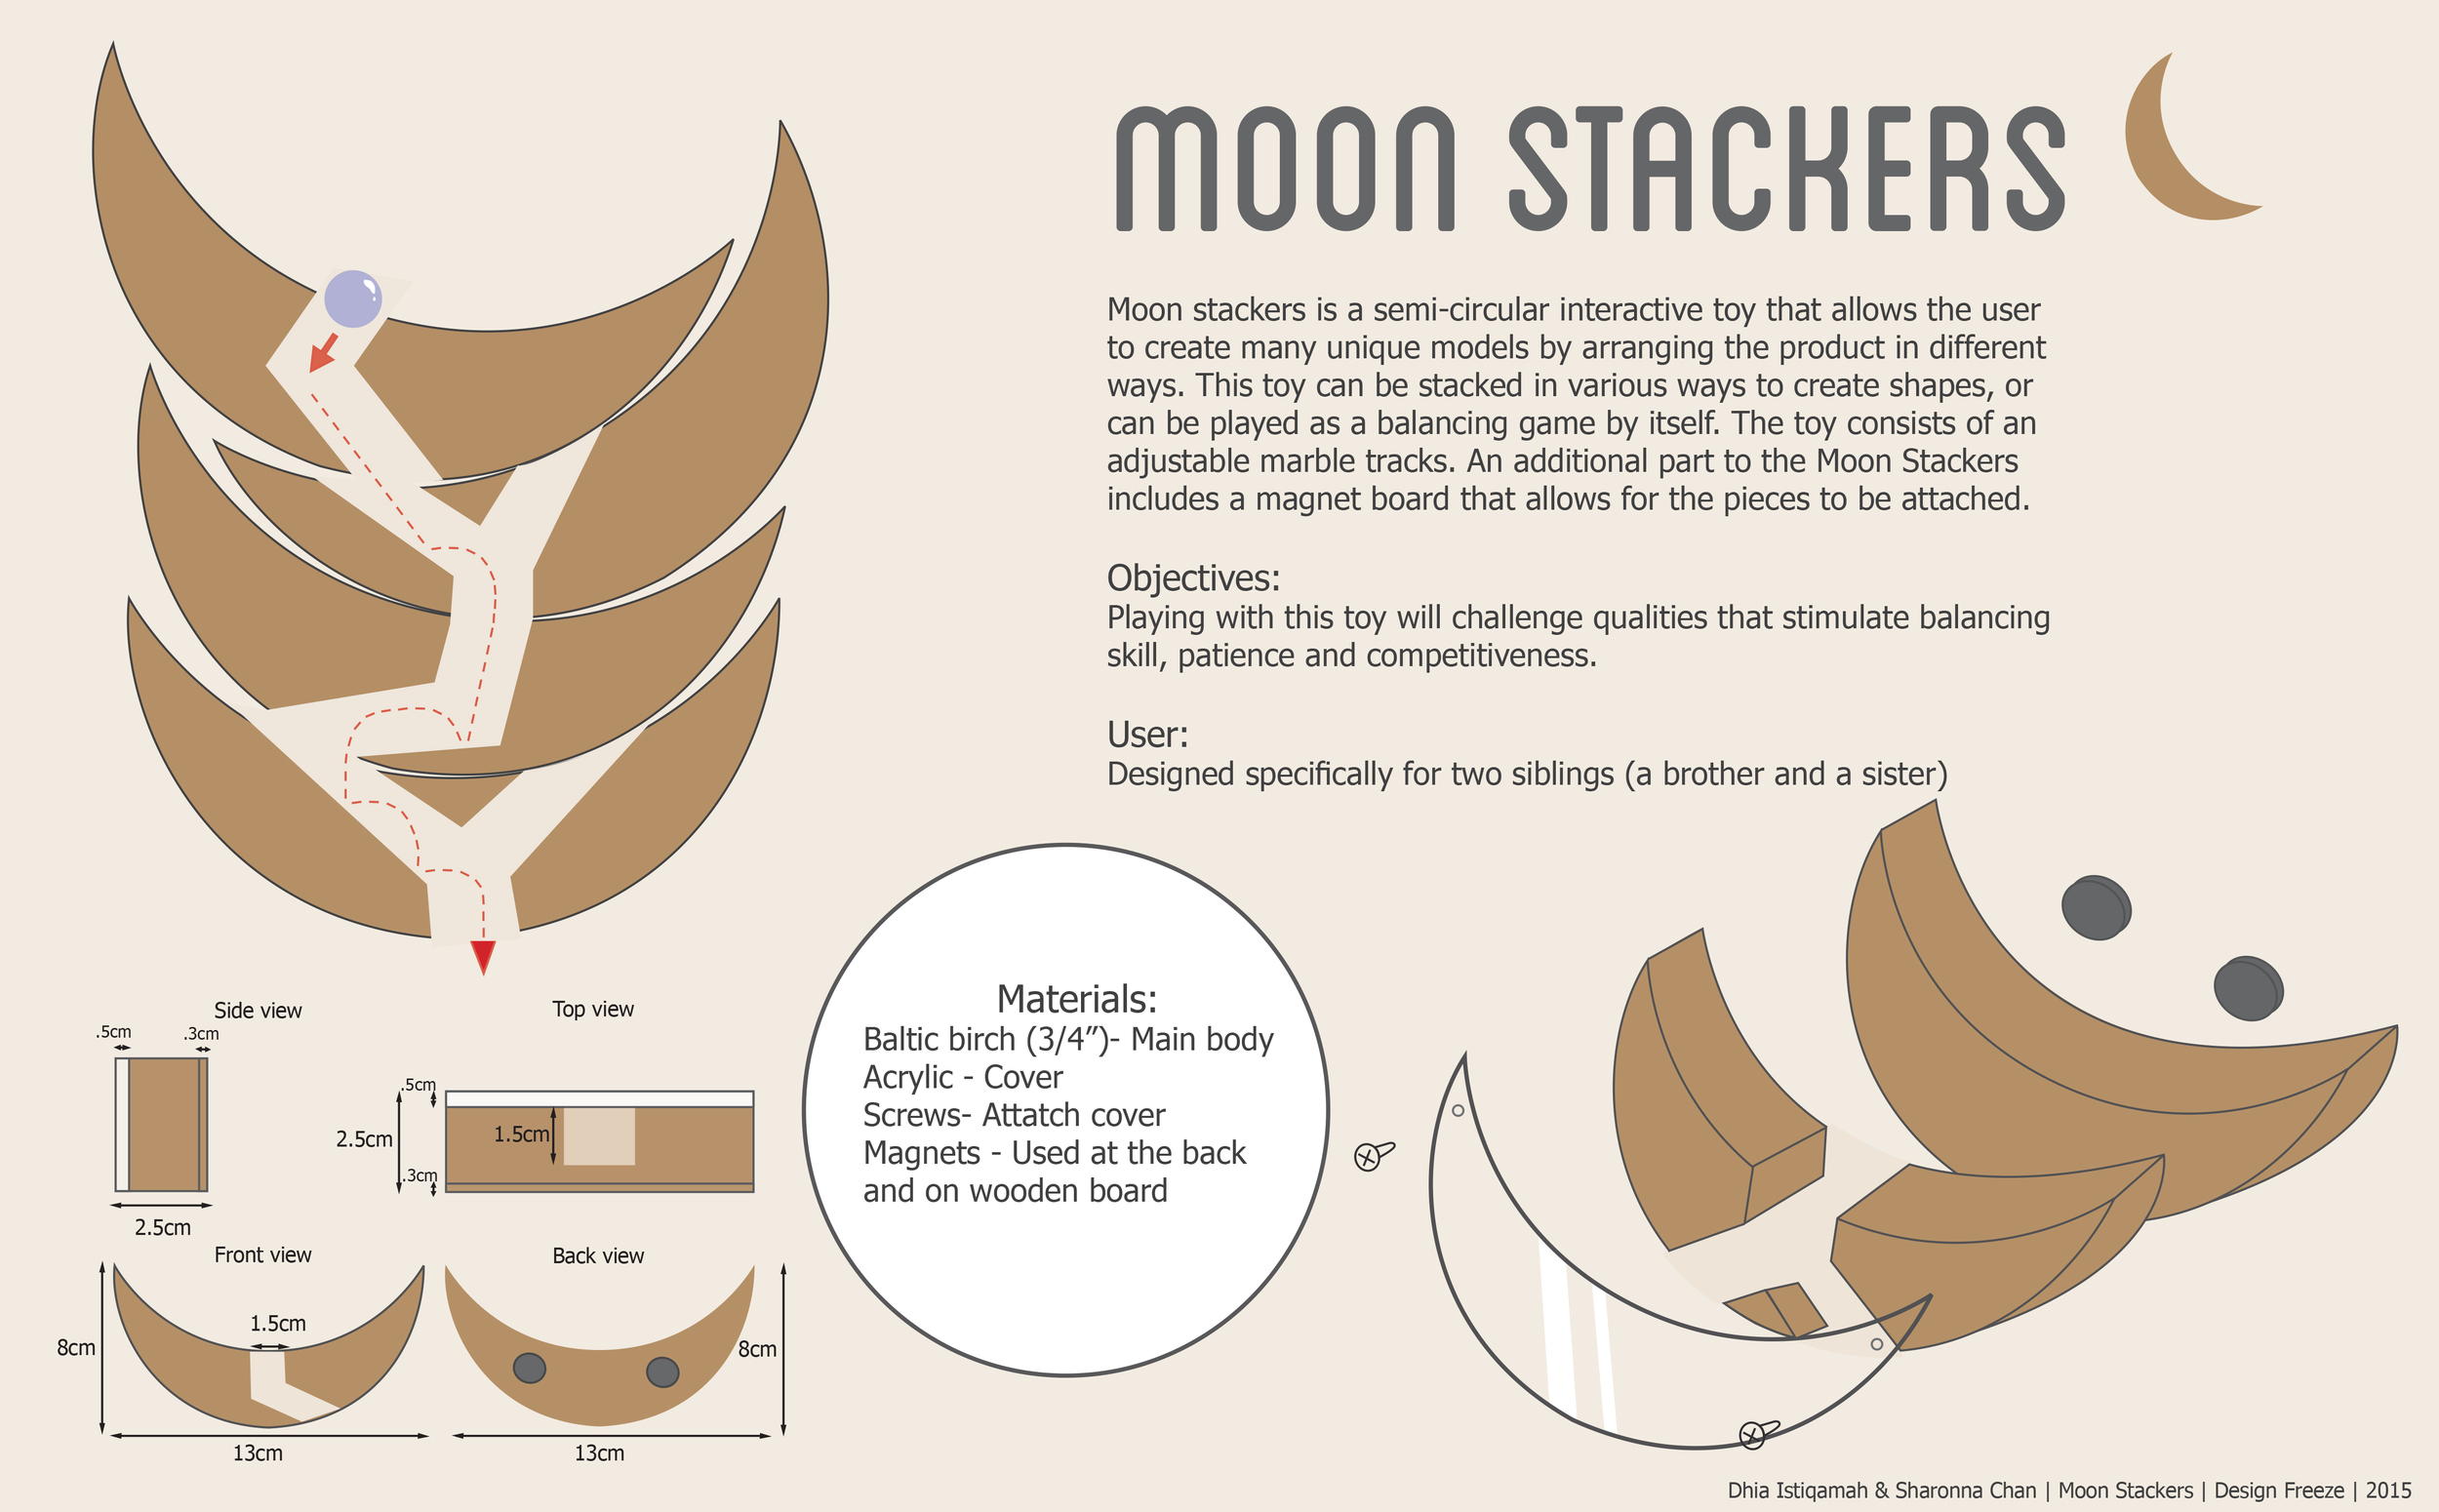 Sharonna and Dhia Moonstackers Design Freeze updated.jpg